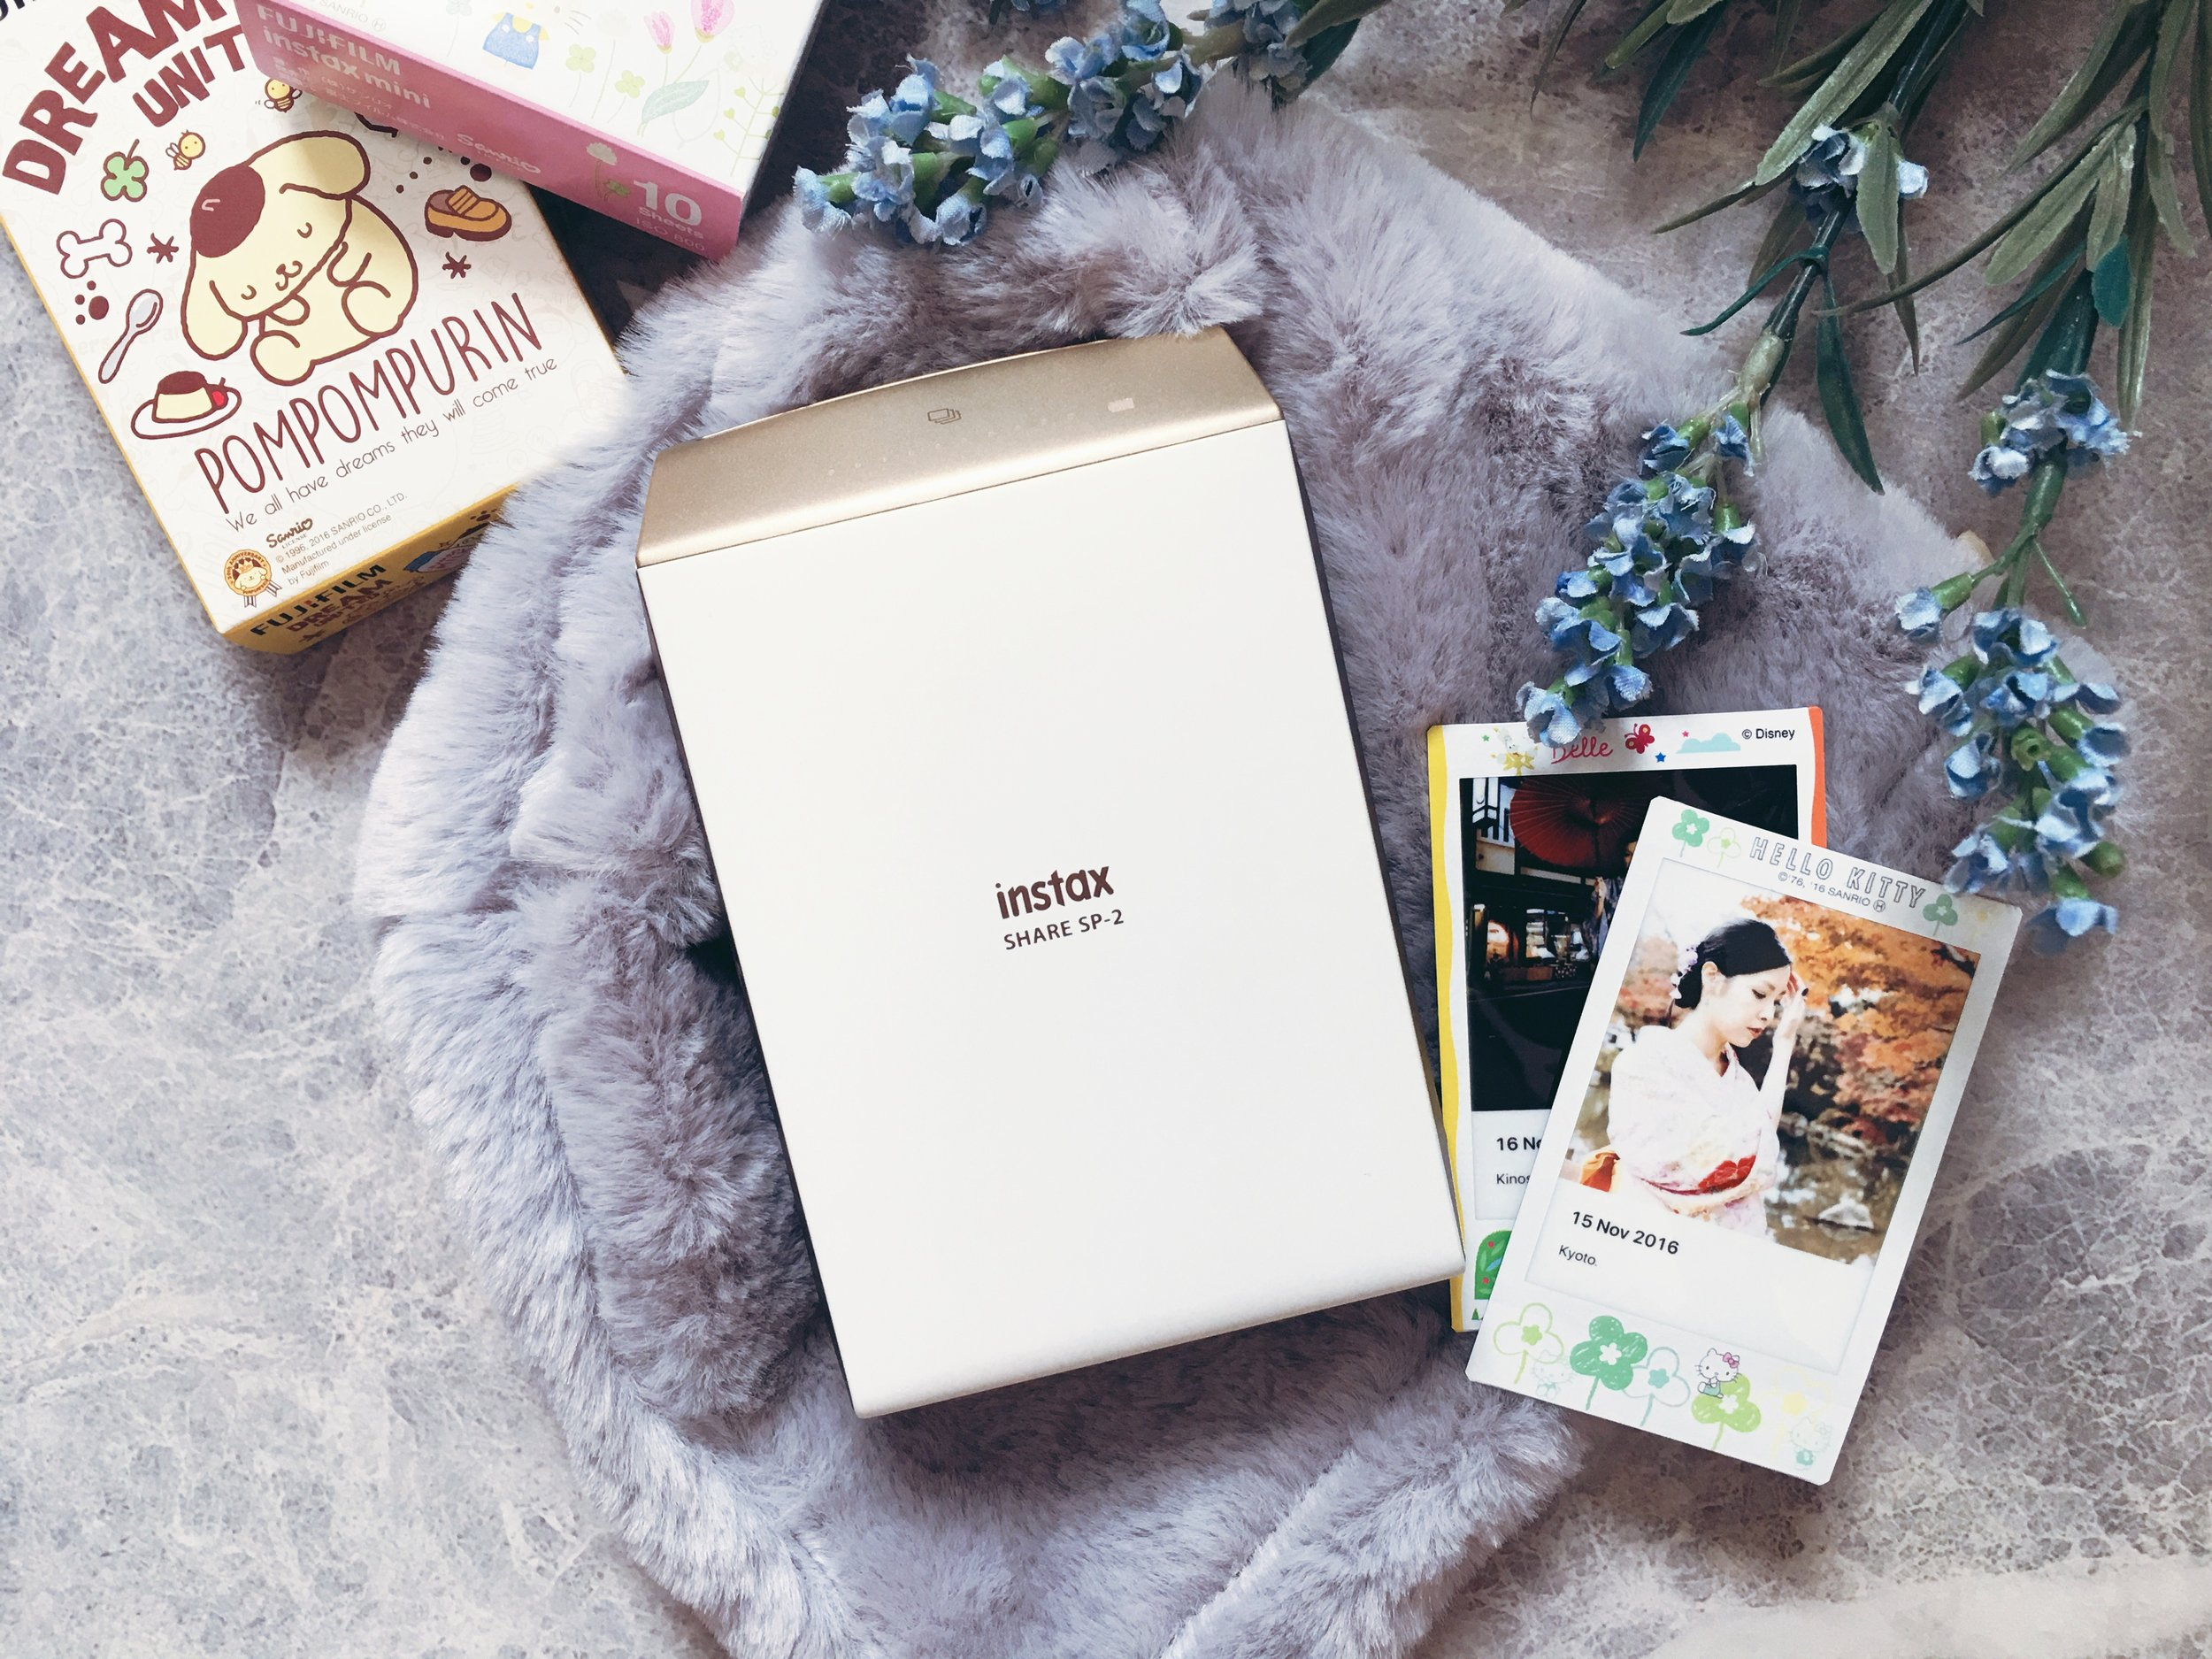 Fujifilm Instax Share SP-2 review: Turning any of my iPhone pics into Polaroid snaps